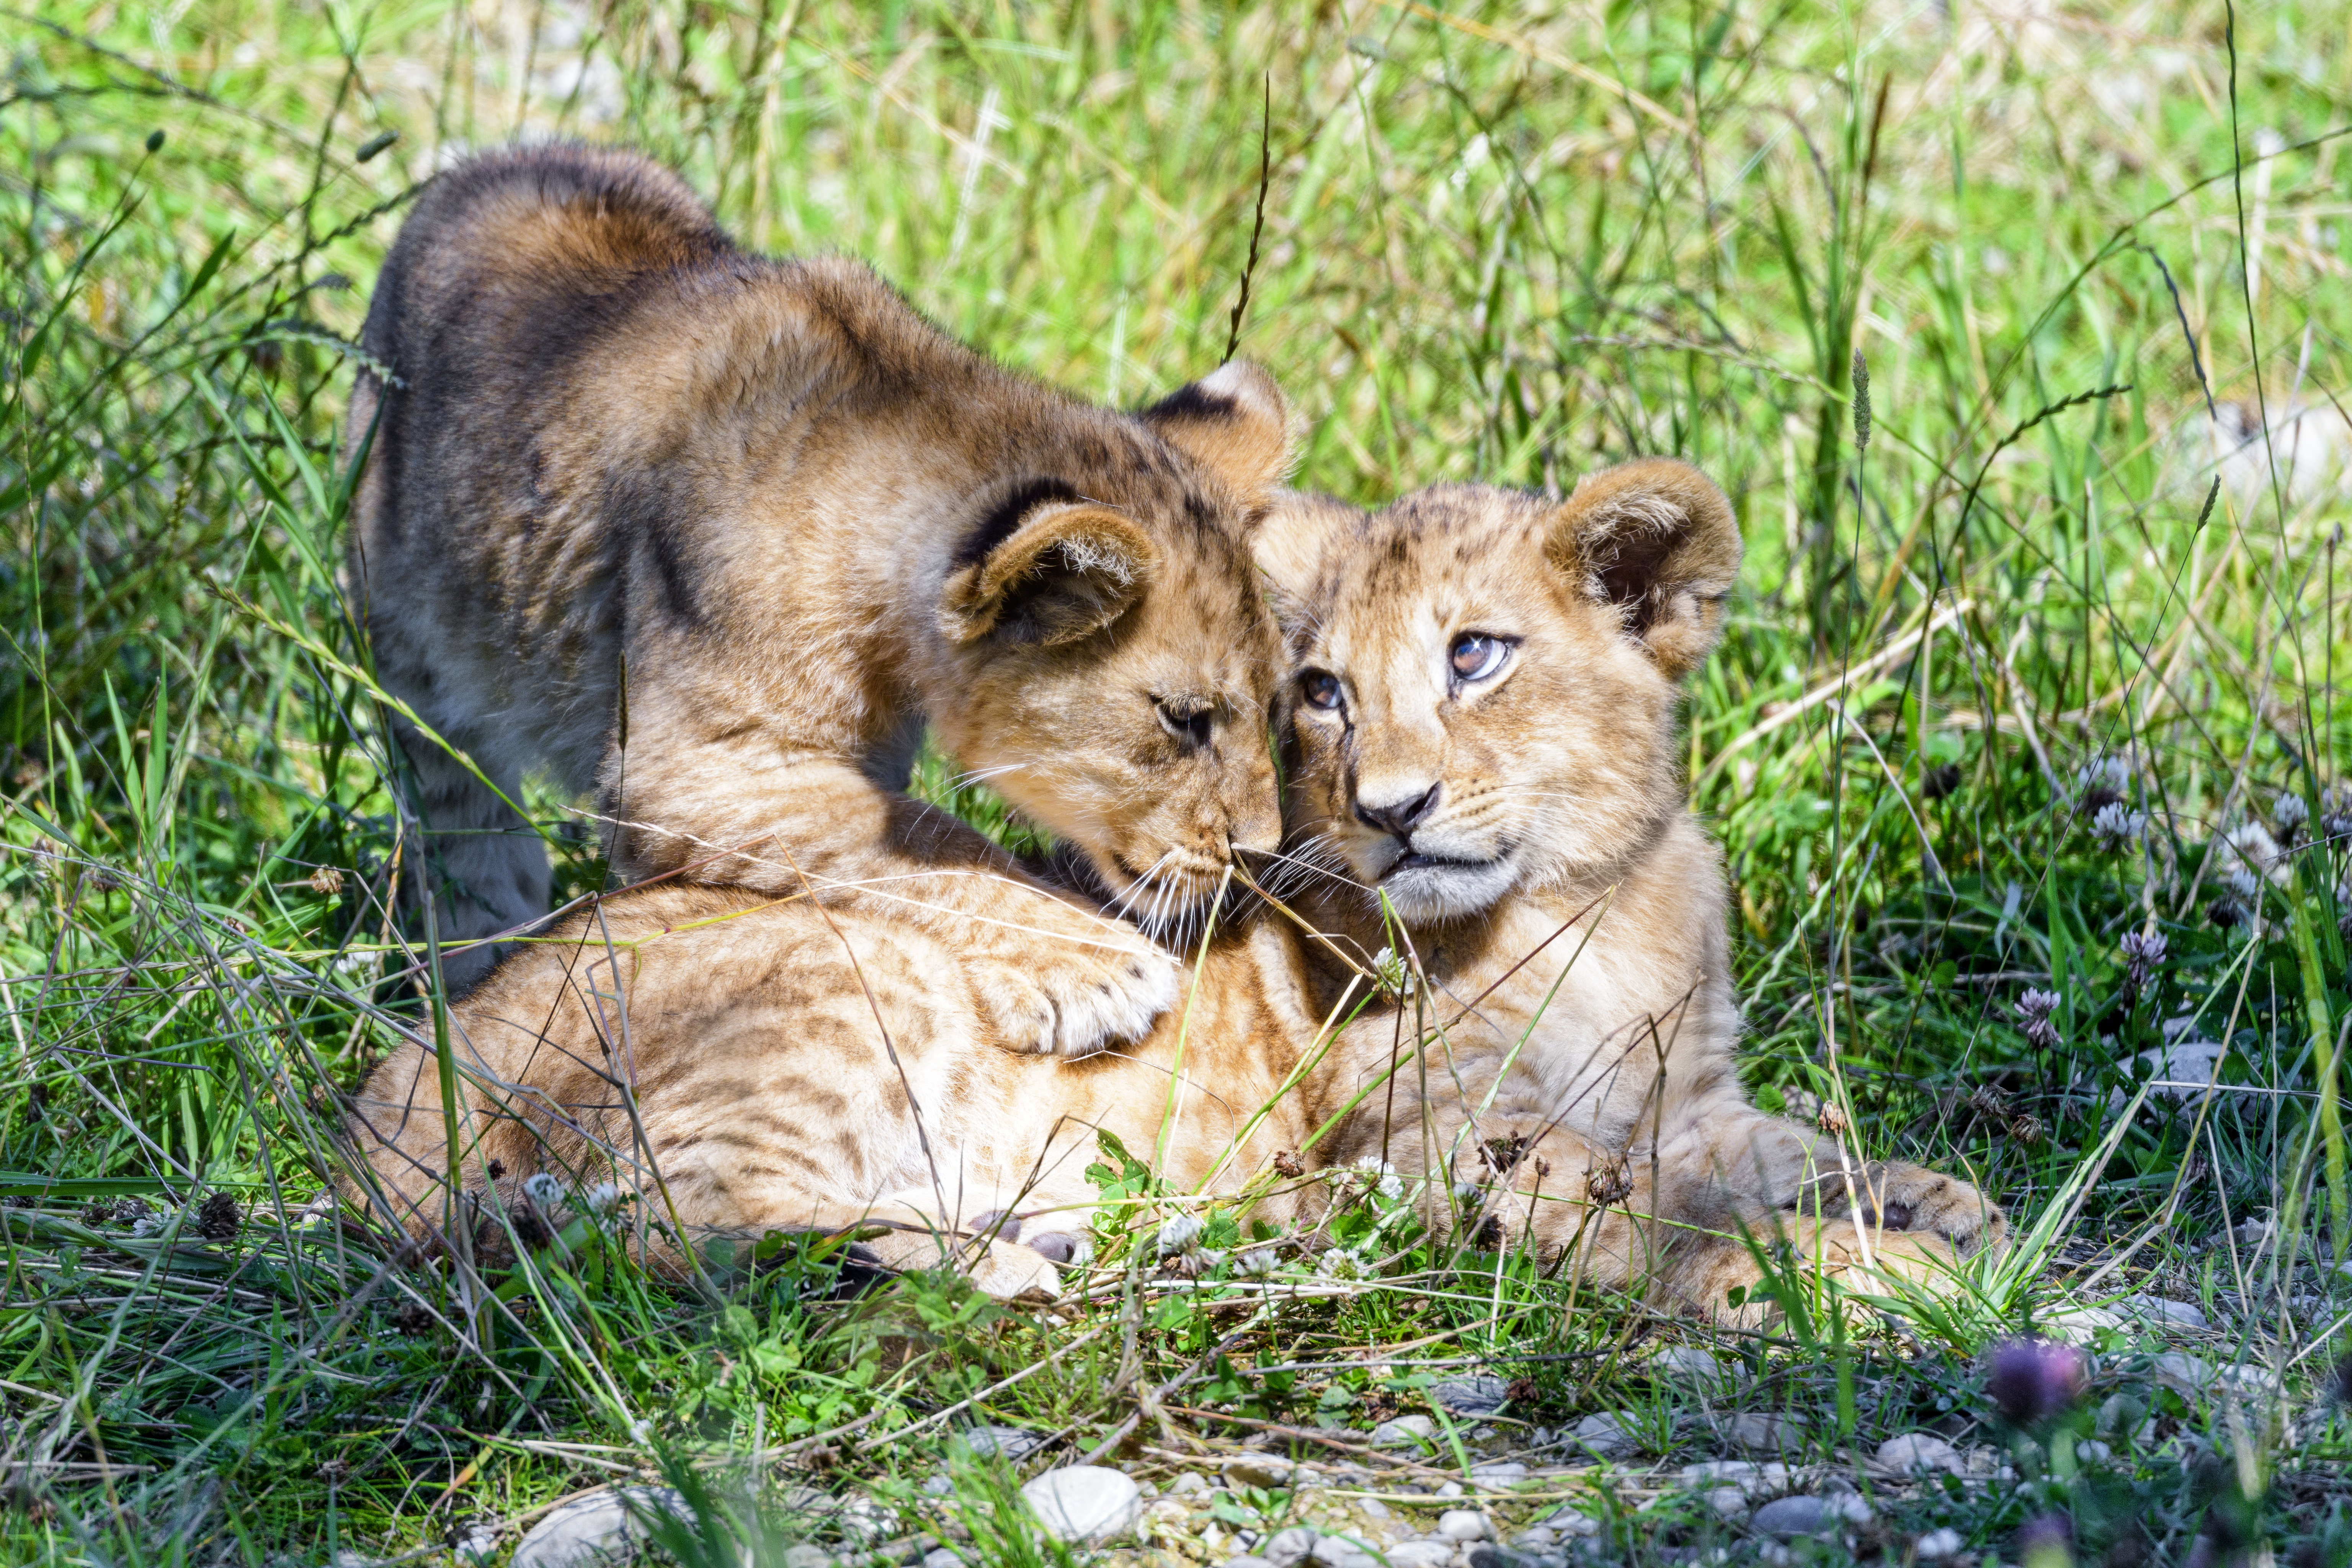 93695 download wallpaper Animals, Lioness, Young, Joey, Family, Nicely, Nice, Care screensavers and pictures for free